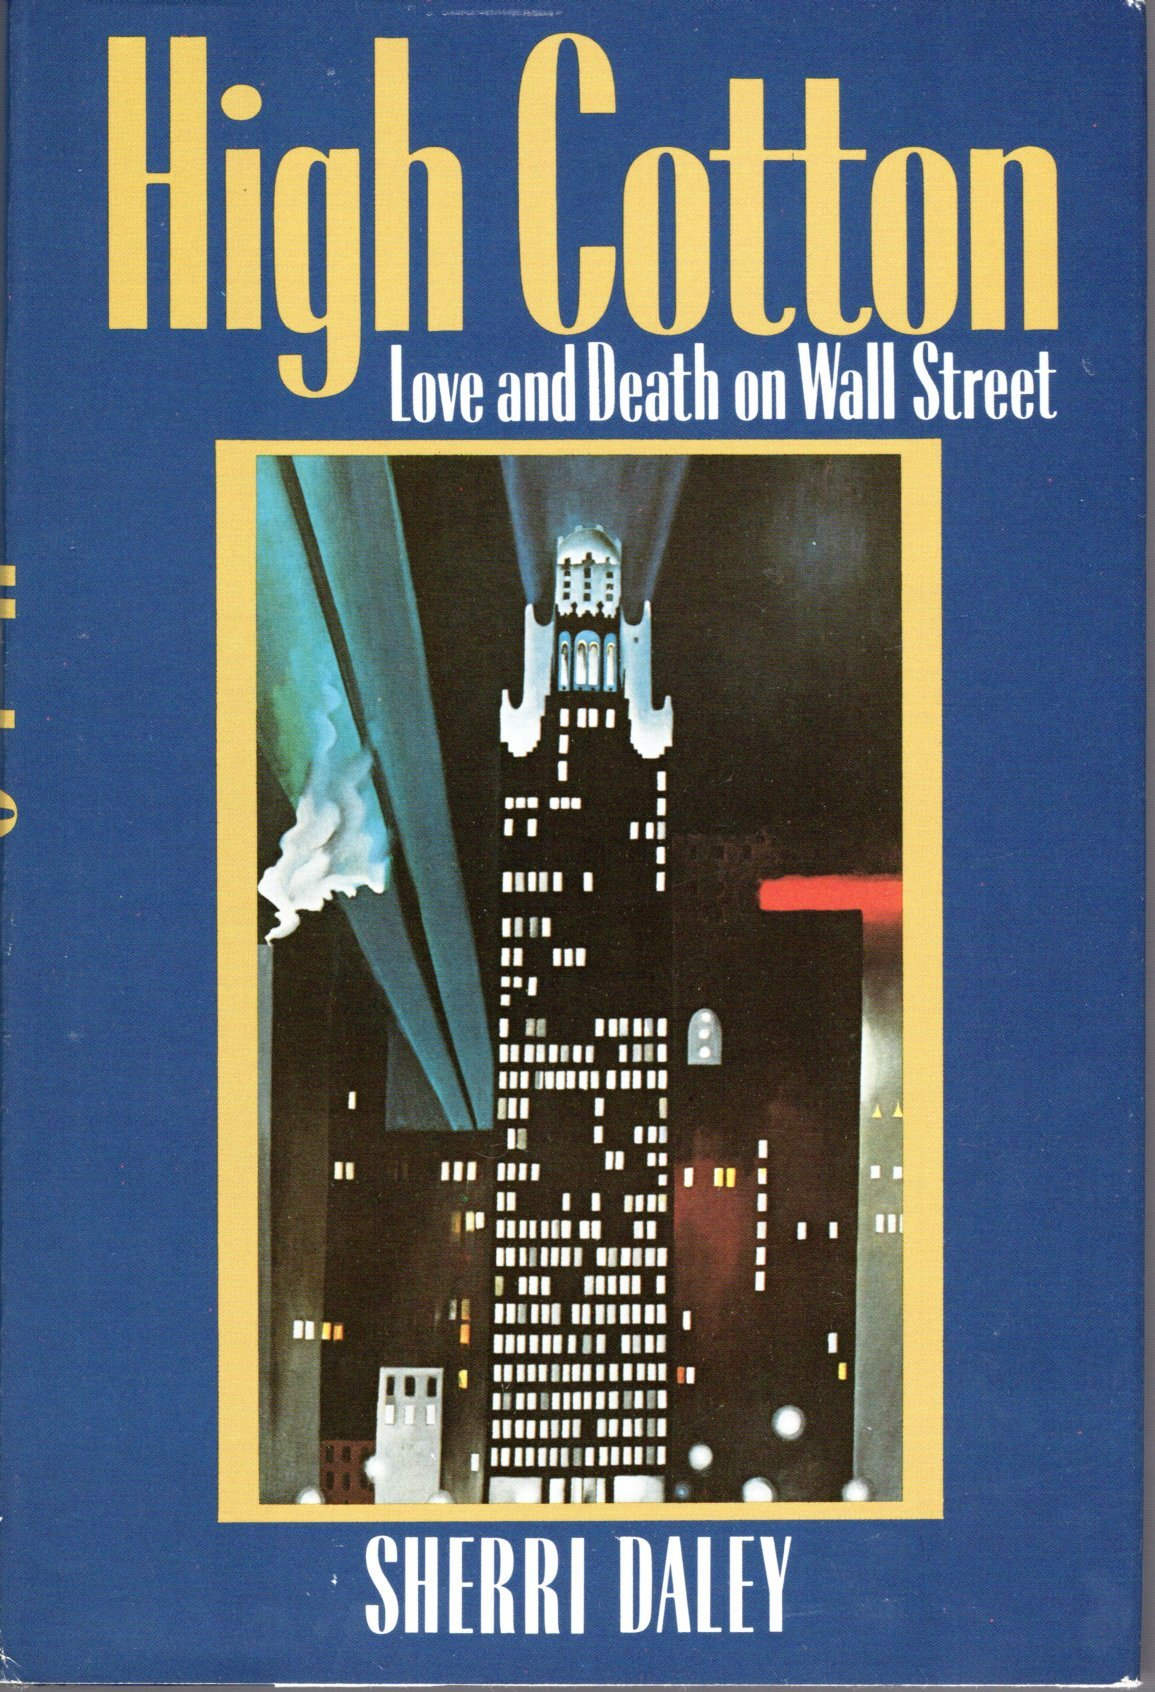 High Cotton: Love and Death on Wall Street